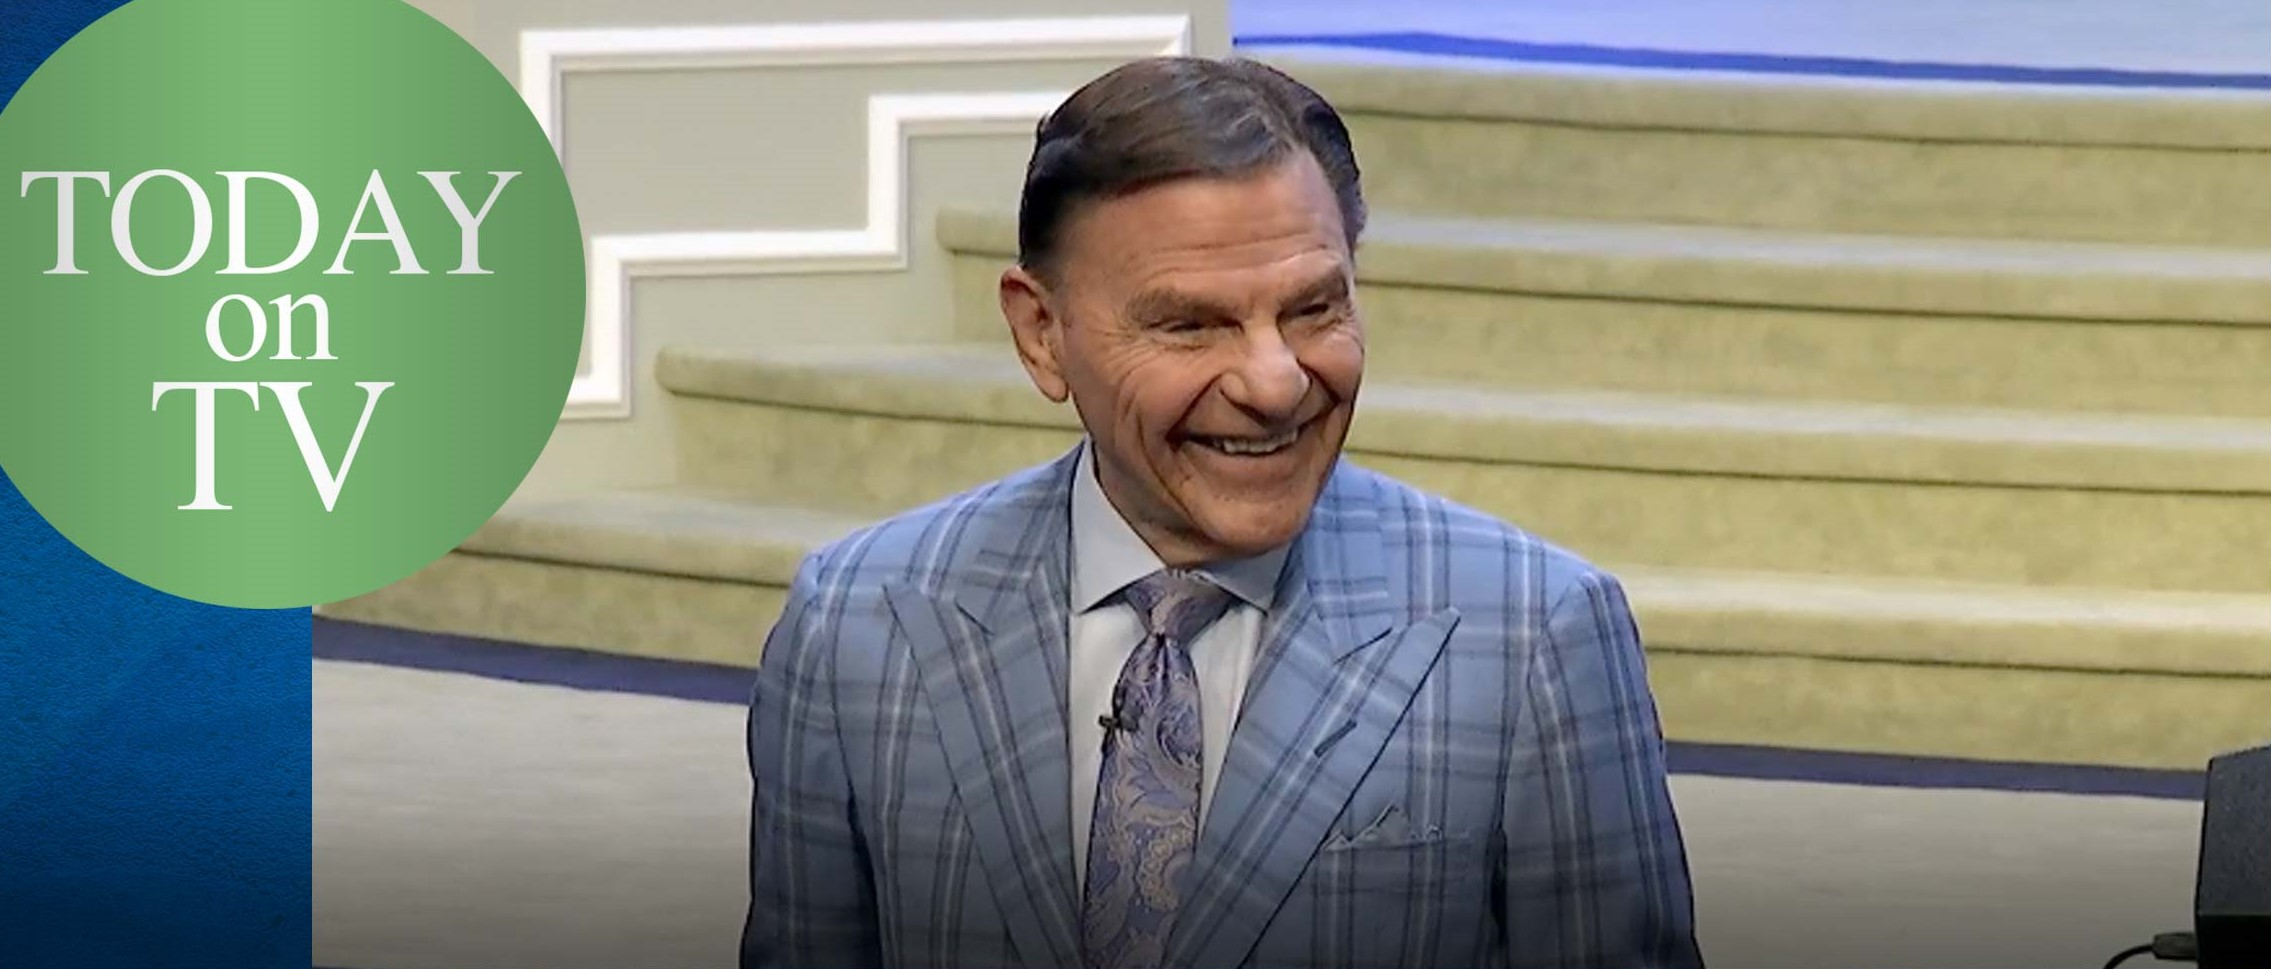 BVOV TV link 14-Jun-2021 - Our God Is Absolutely Good